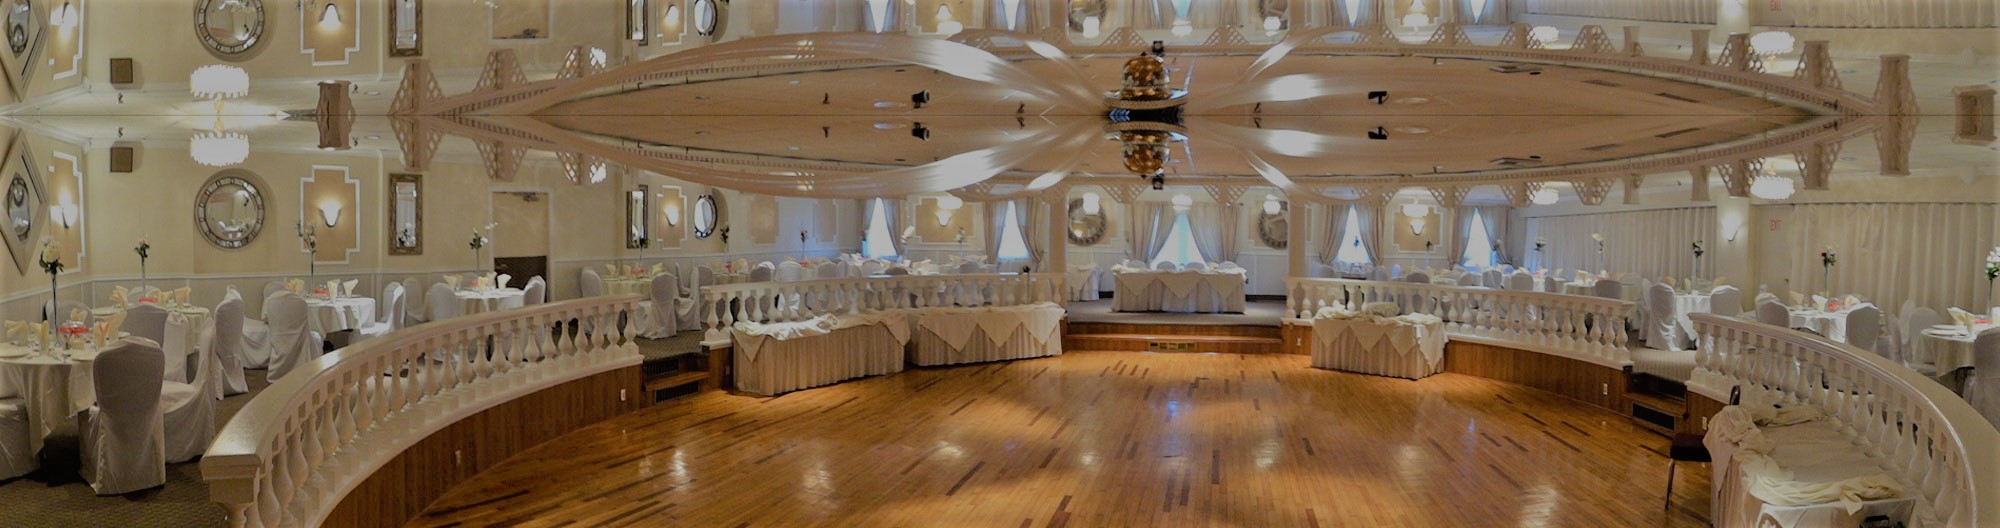 La Mirage Restaurant and Catering